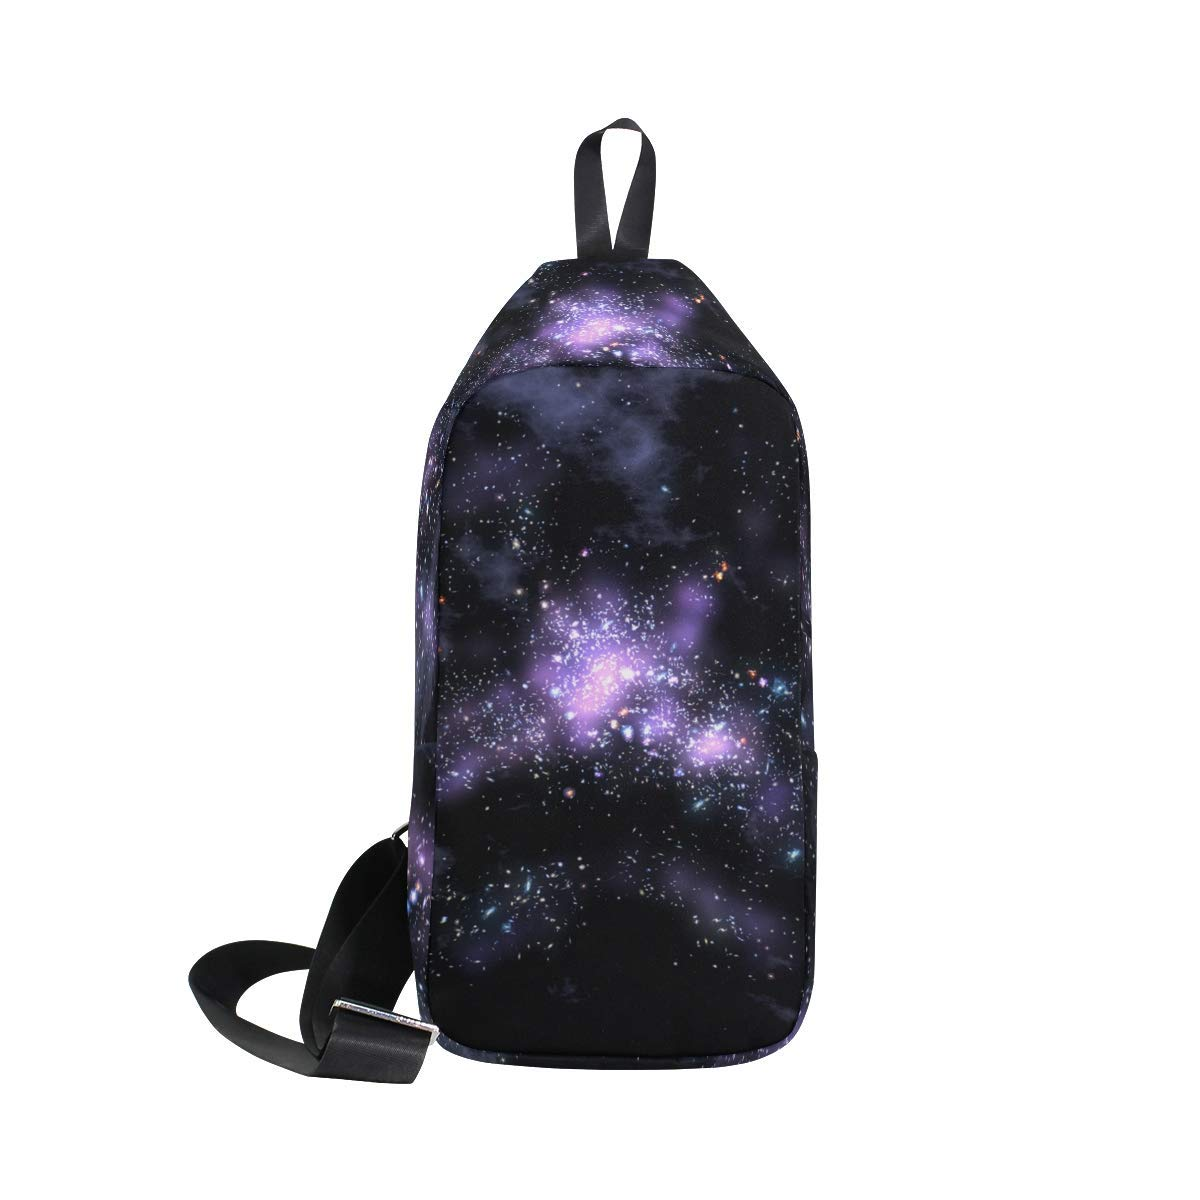 b36a407abe74 Get Quotations · LORVIES Galaxy Design Sling Bag Shoulder Chest Cross Body  Backpack Lightweight Casual Daypack for Men Women